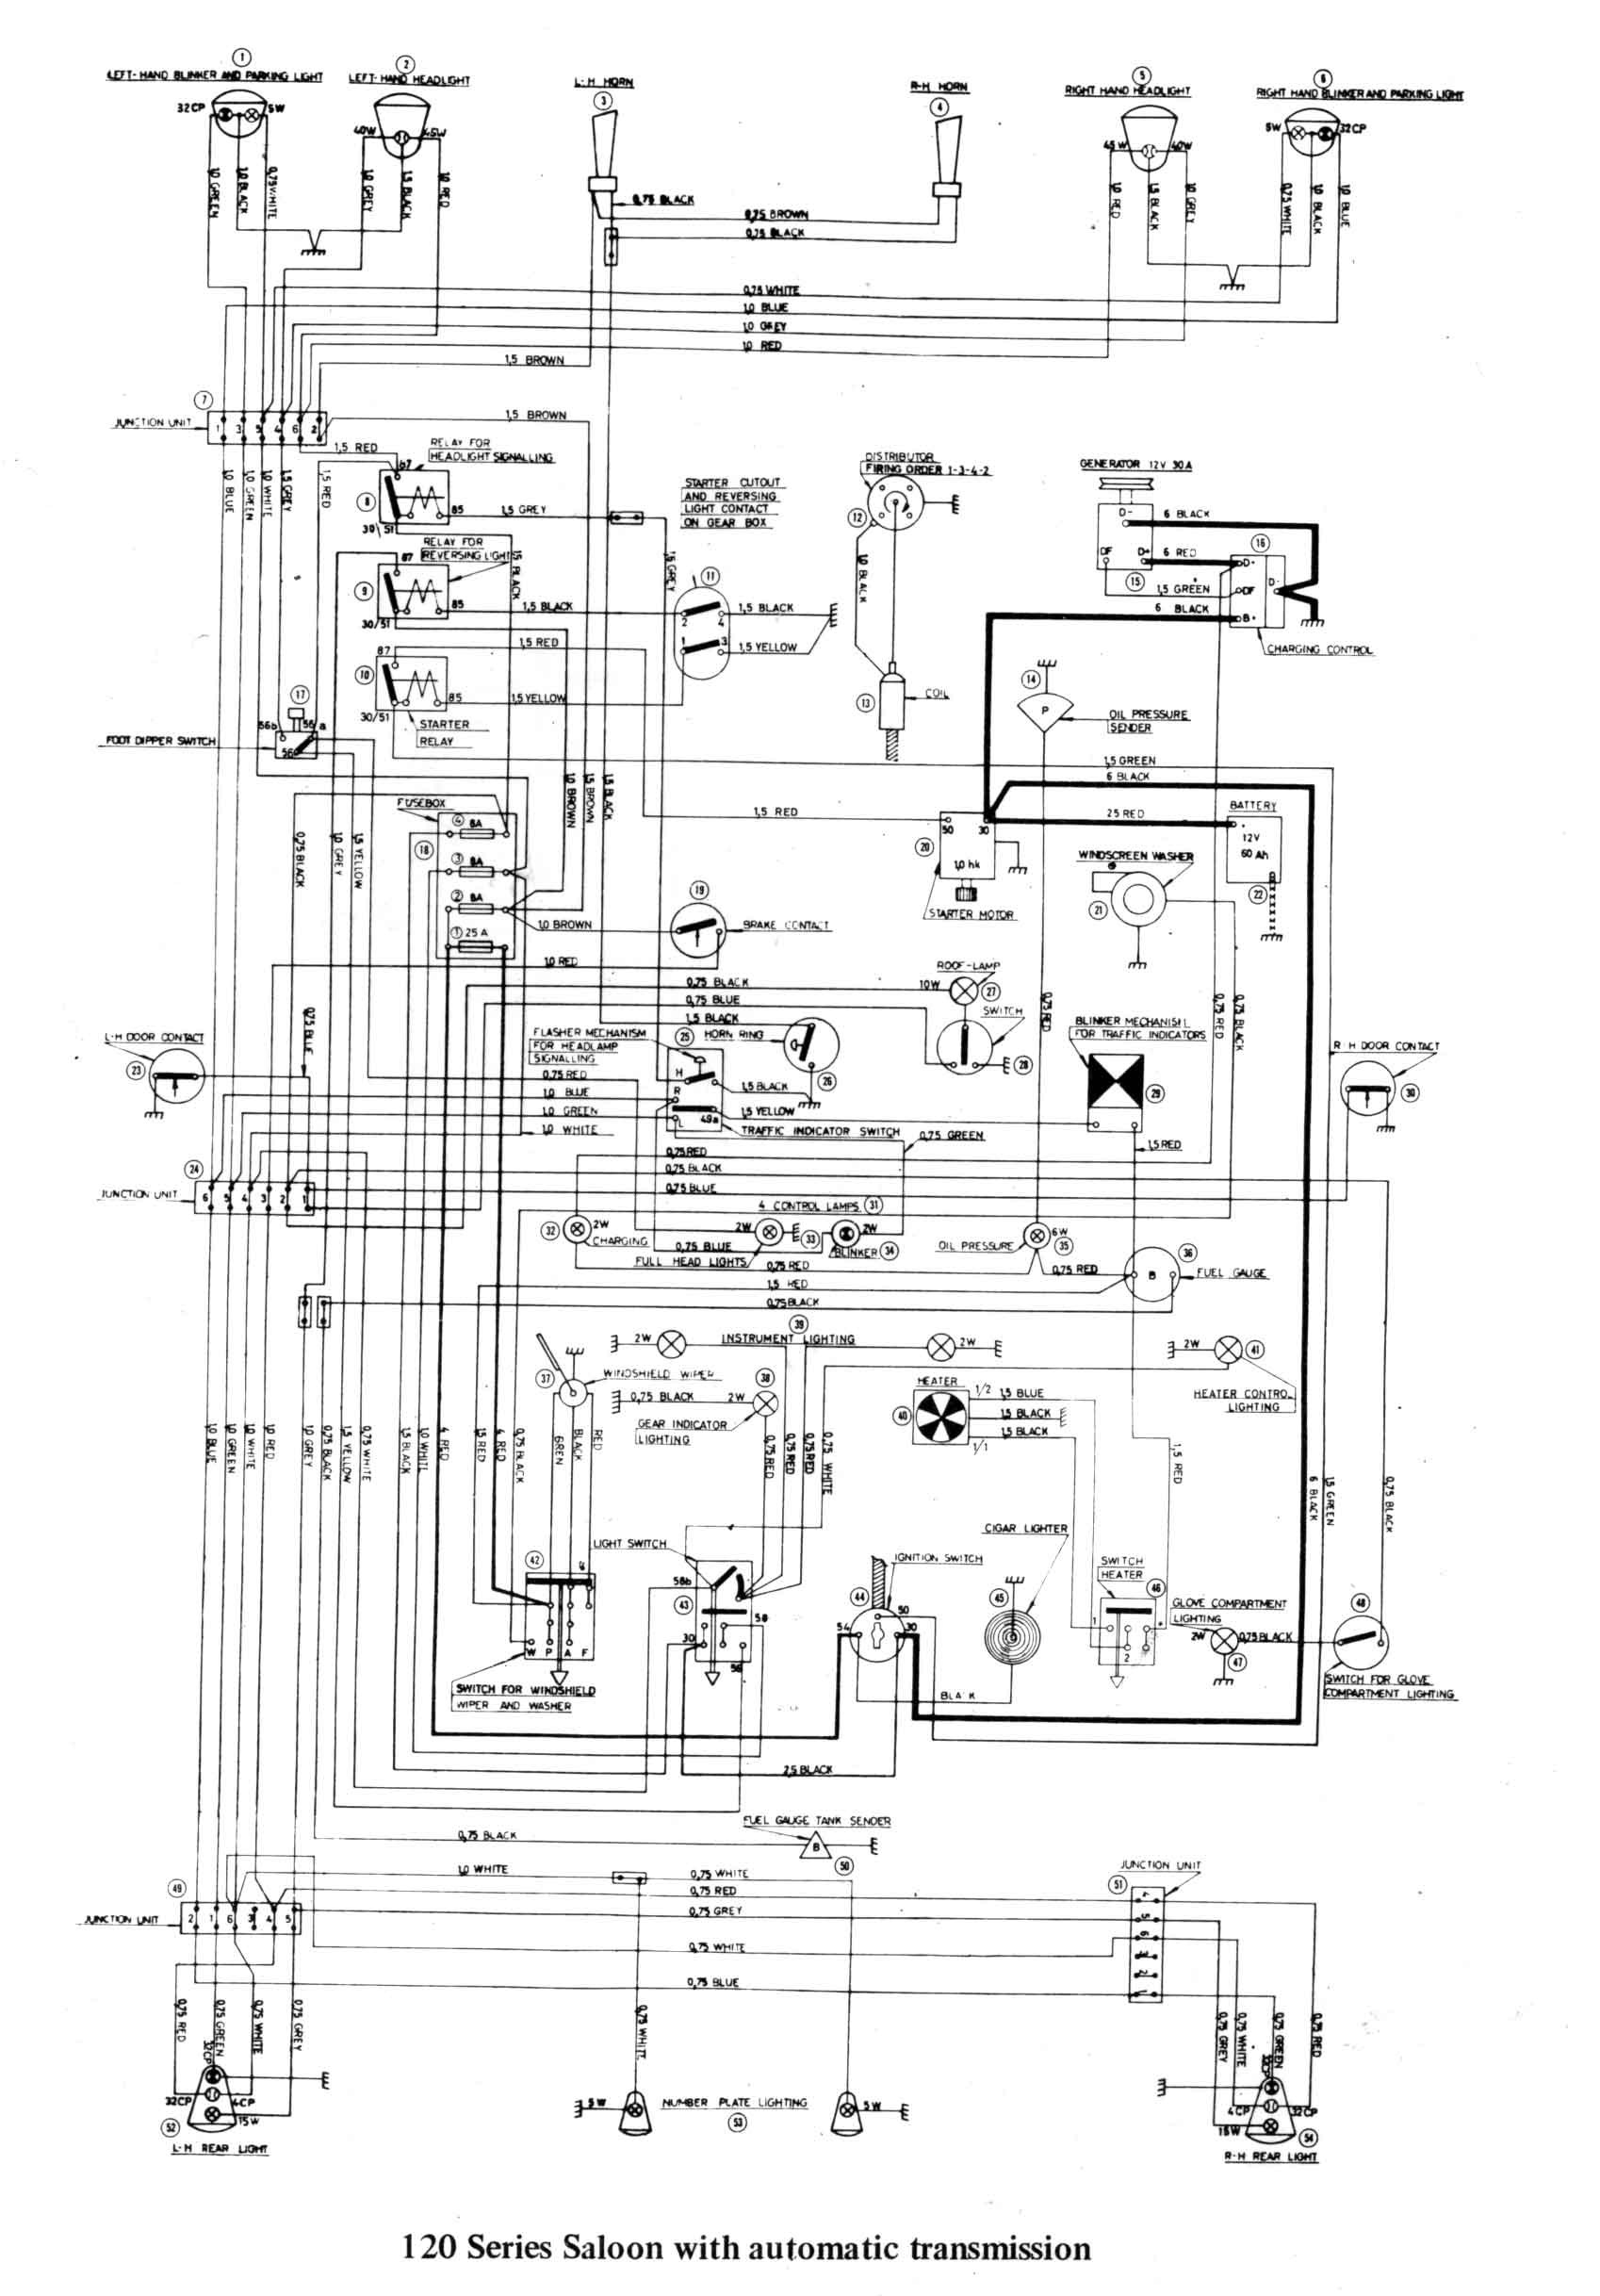 Gear Shift Diagram Sw Em Od Retrofitting On A Vintage